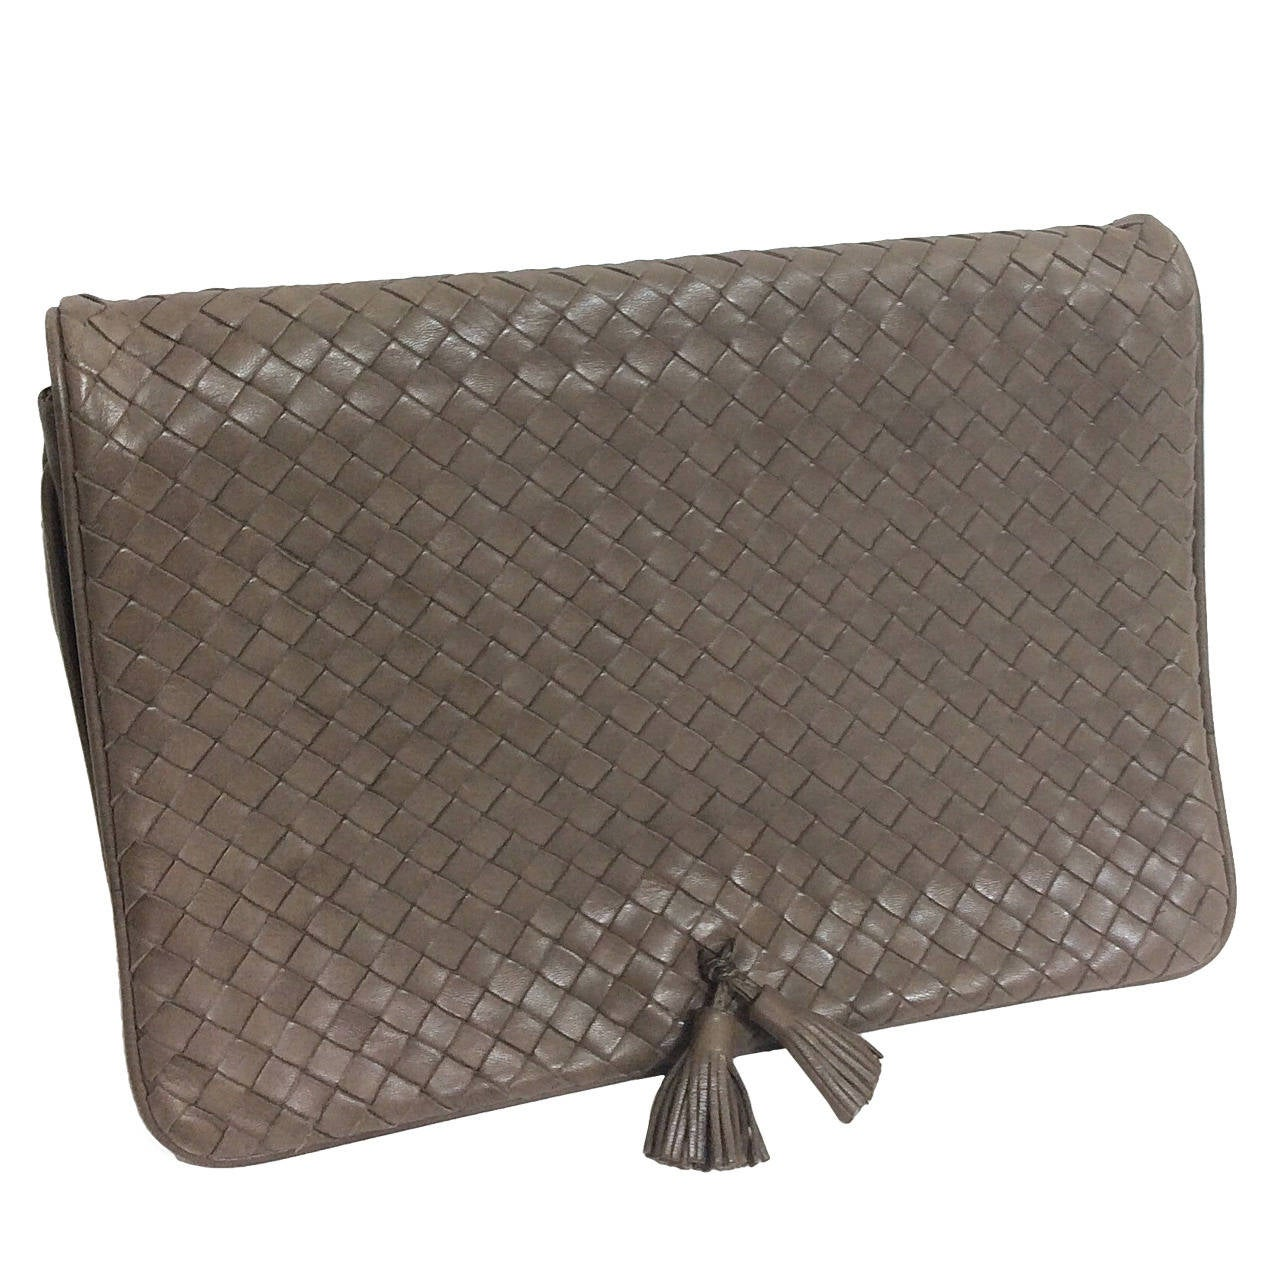 bottega veneta woven leather clutch vintage for sale at